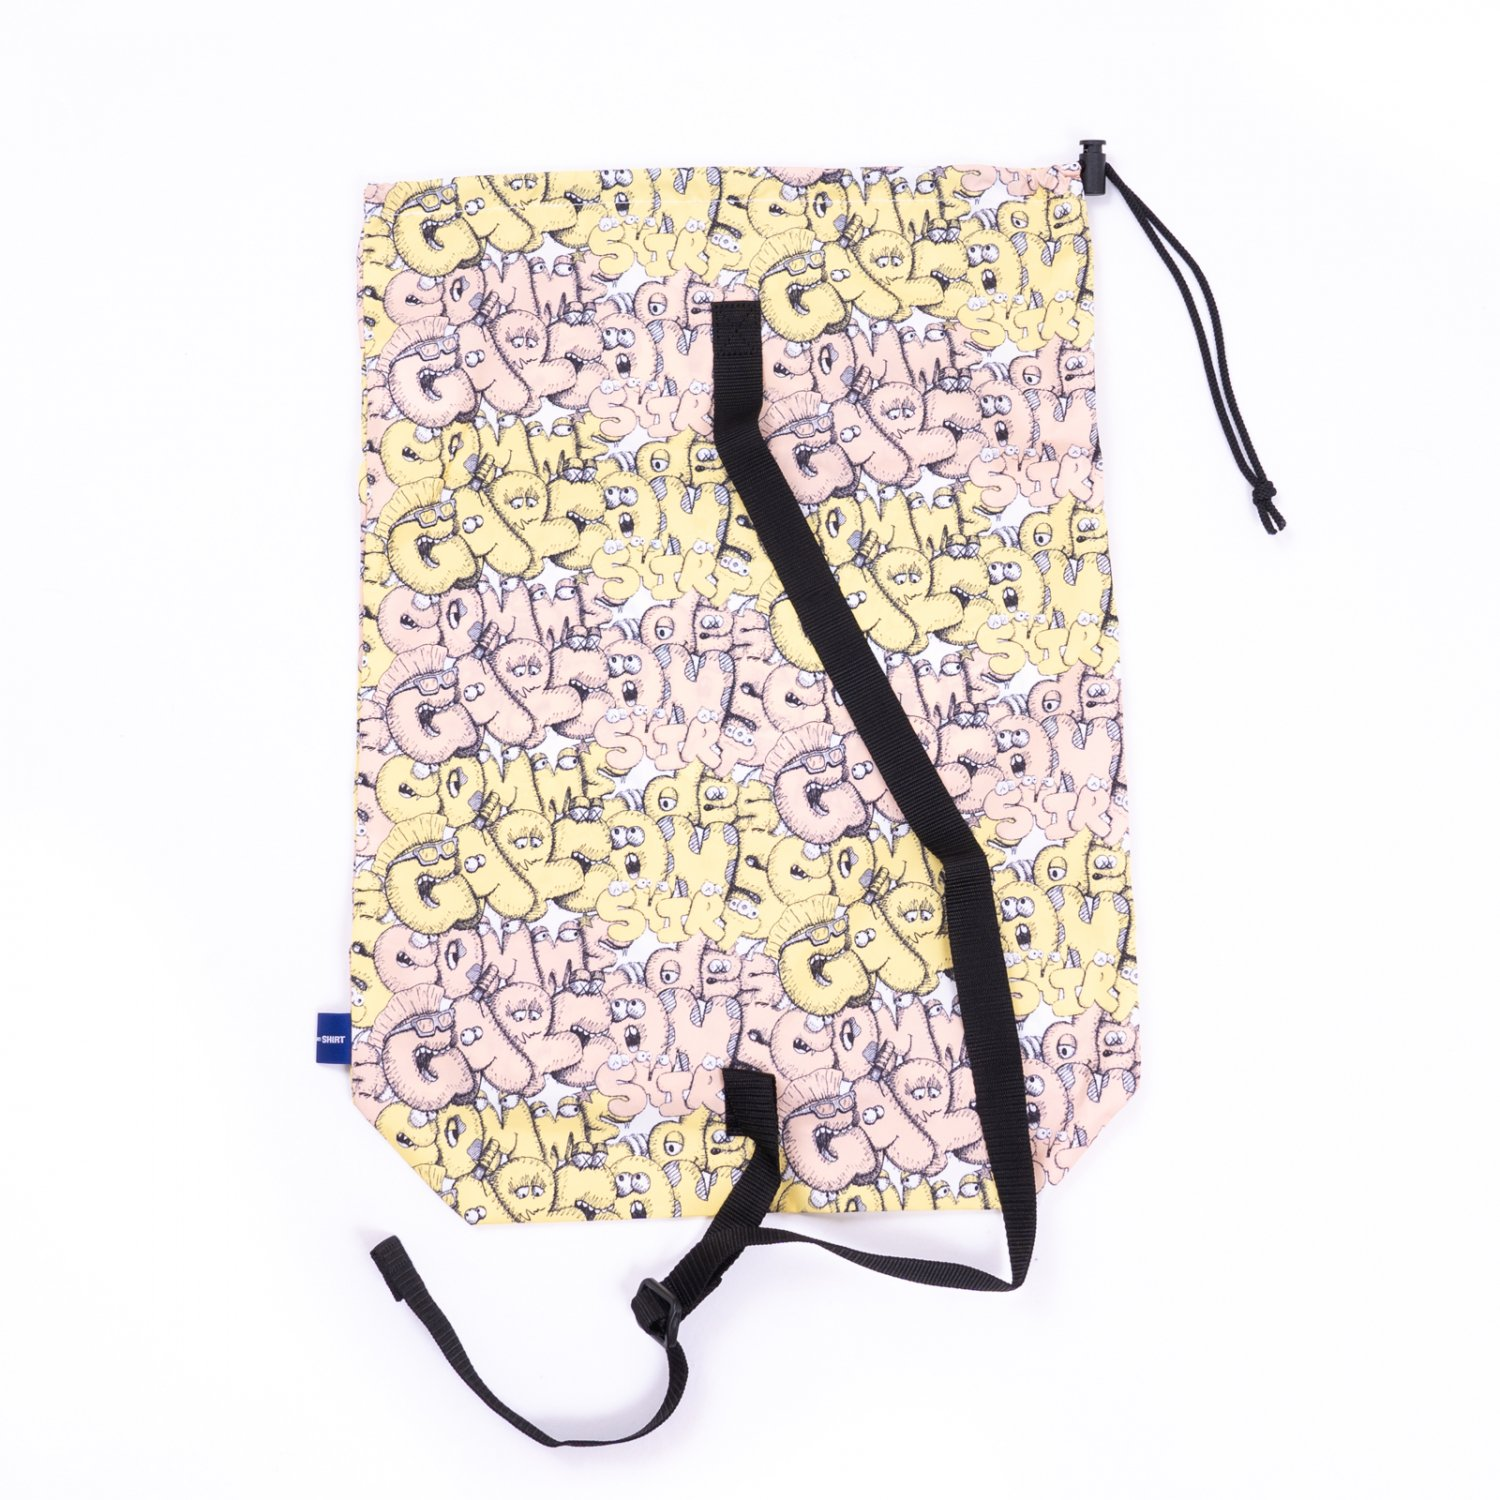 COMME des GARCONS SHIRT * 21AW Collection KAWS Pattern Orinted Polyester Bag * Yellow